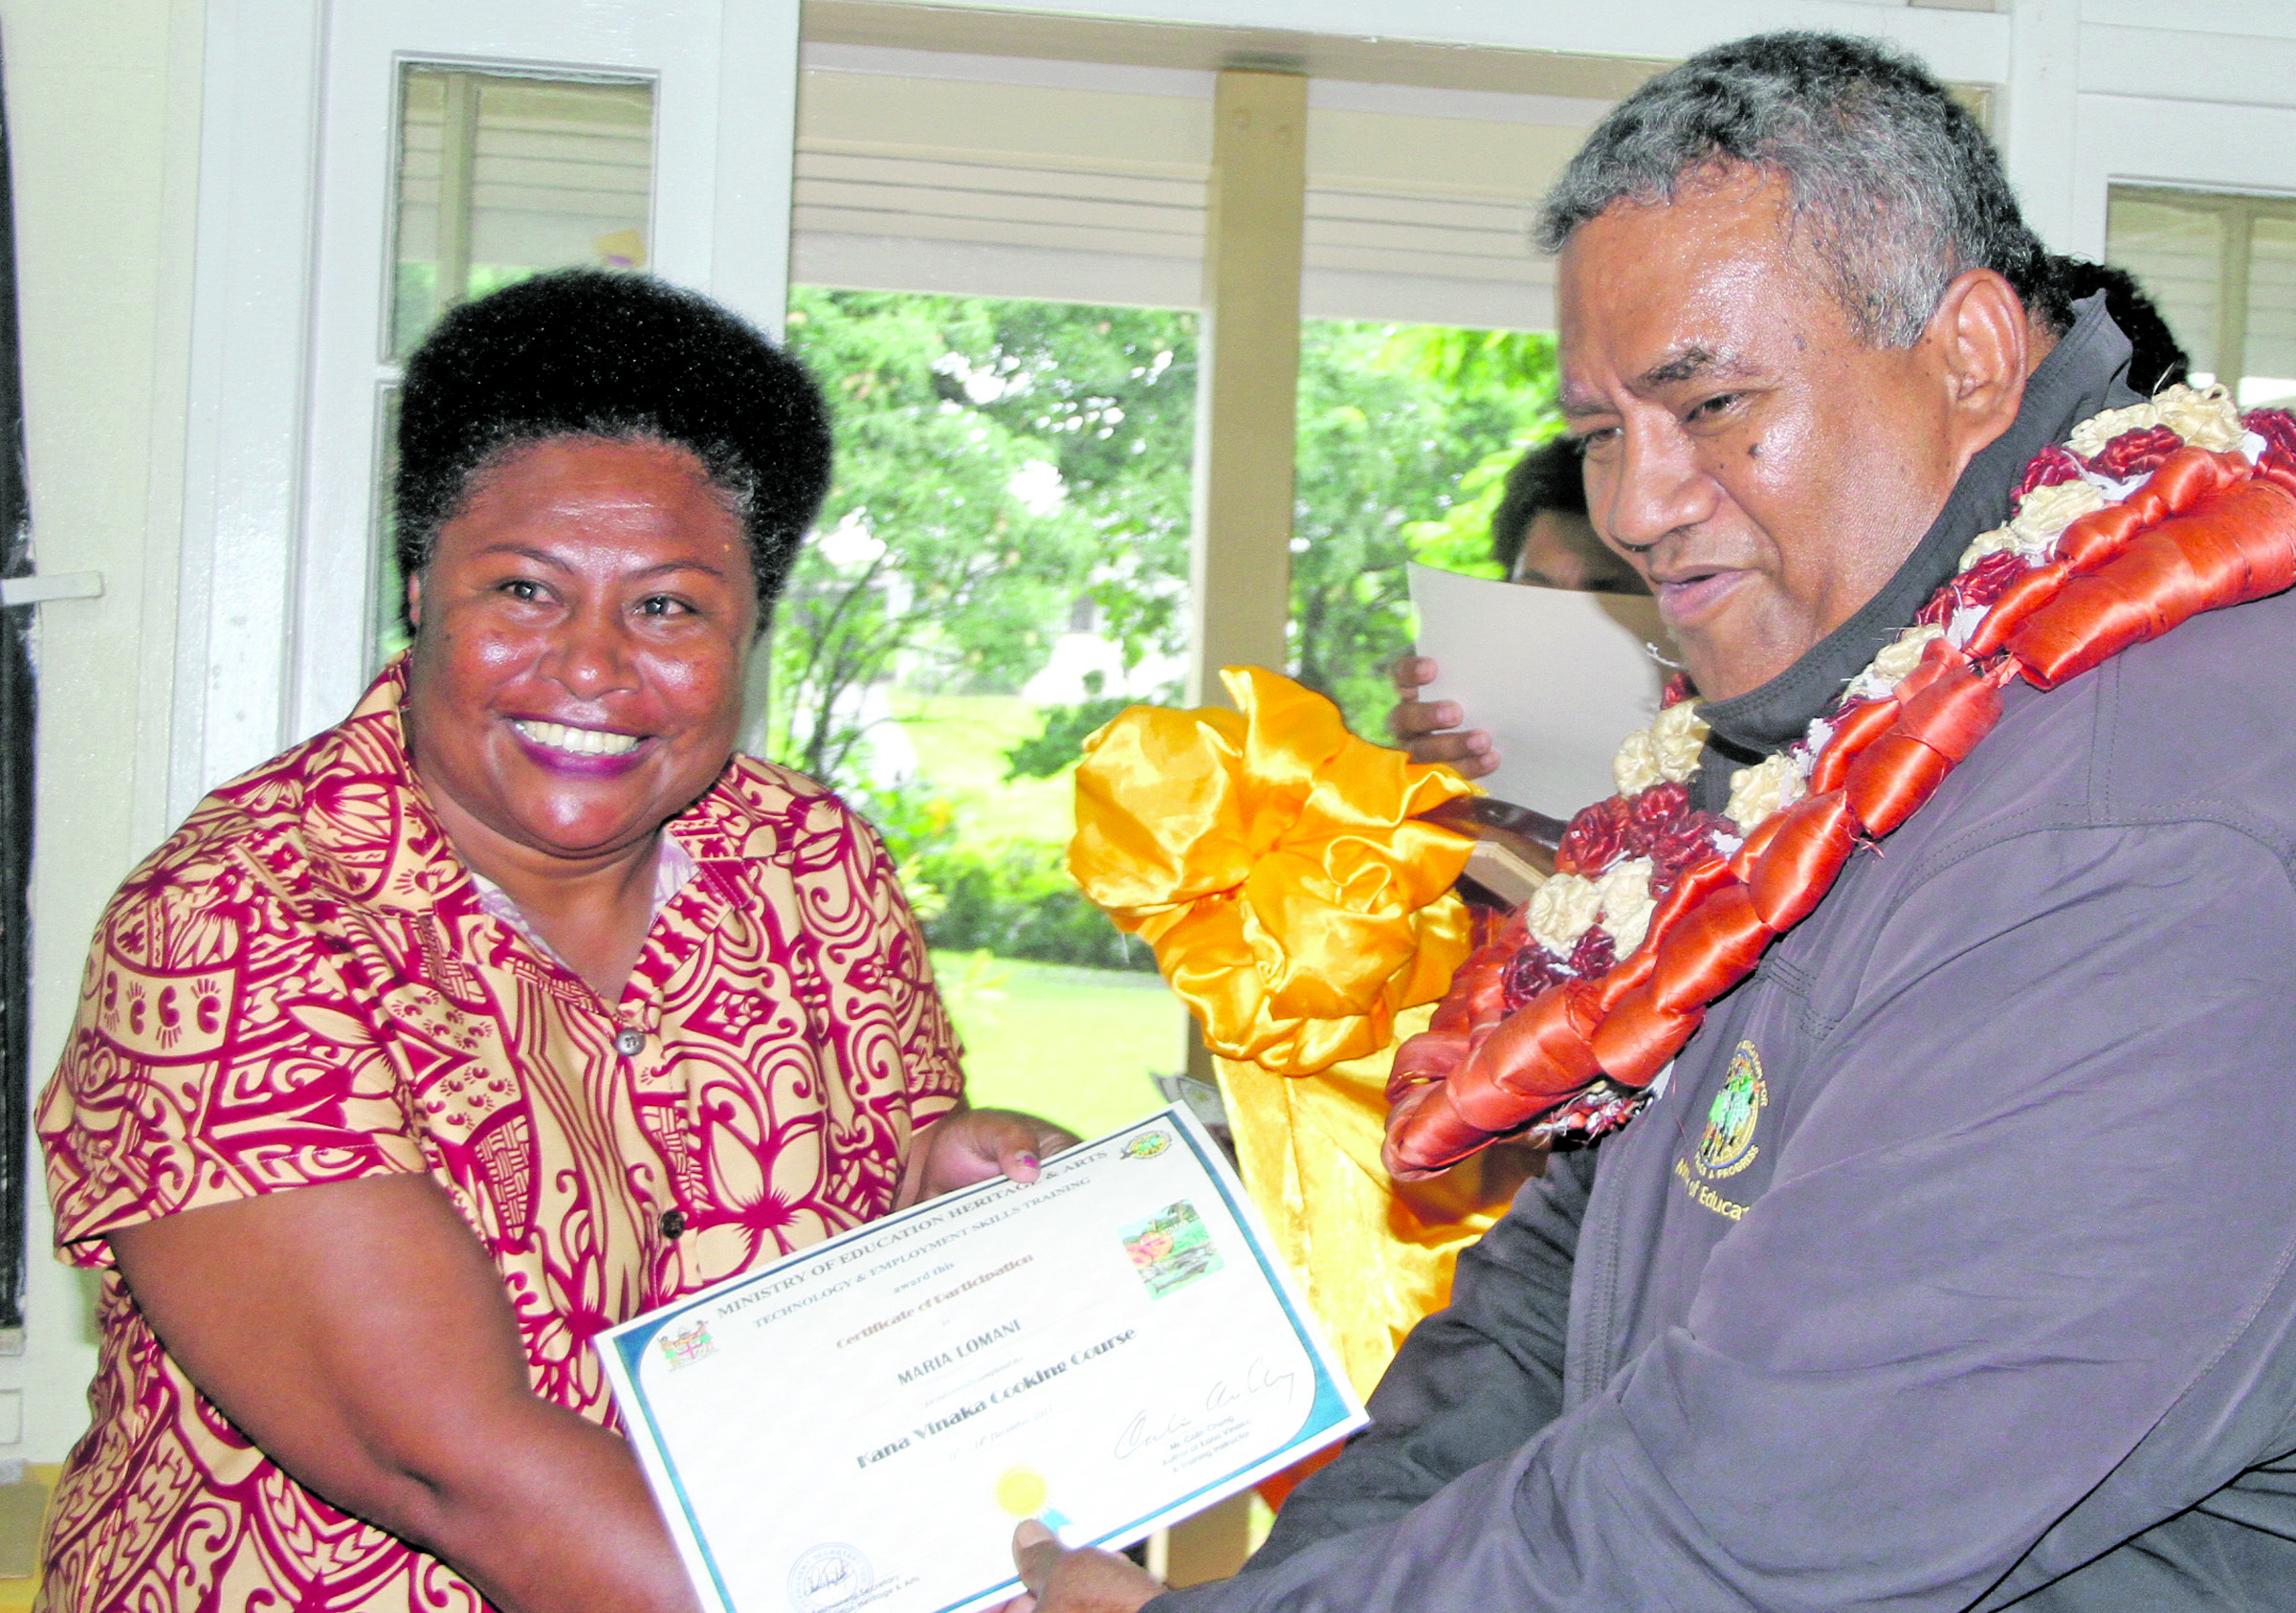 Maria Lomani receives Kana Vinaka cooking course certificate from Ministry of Education Permanent Secretary Iowane Tiko  at Technical College Suva on December 14, 2017. Photo: Ronald Kumar.